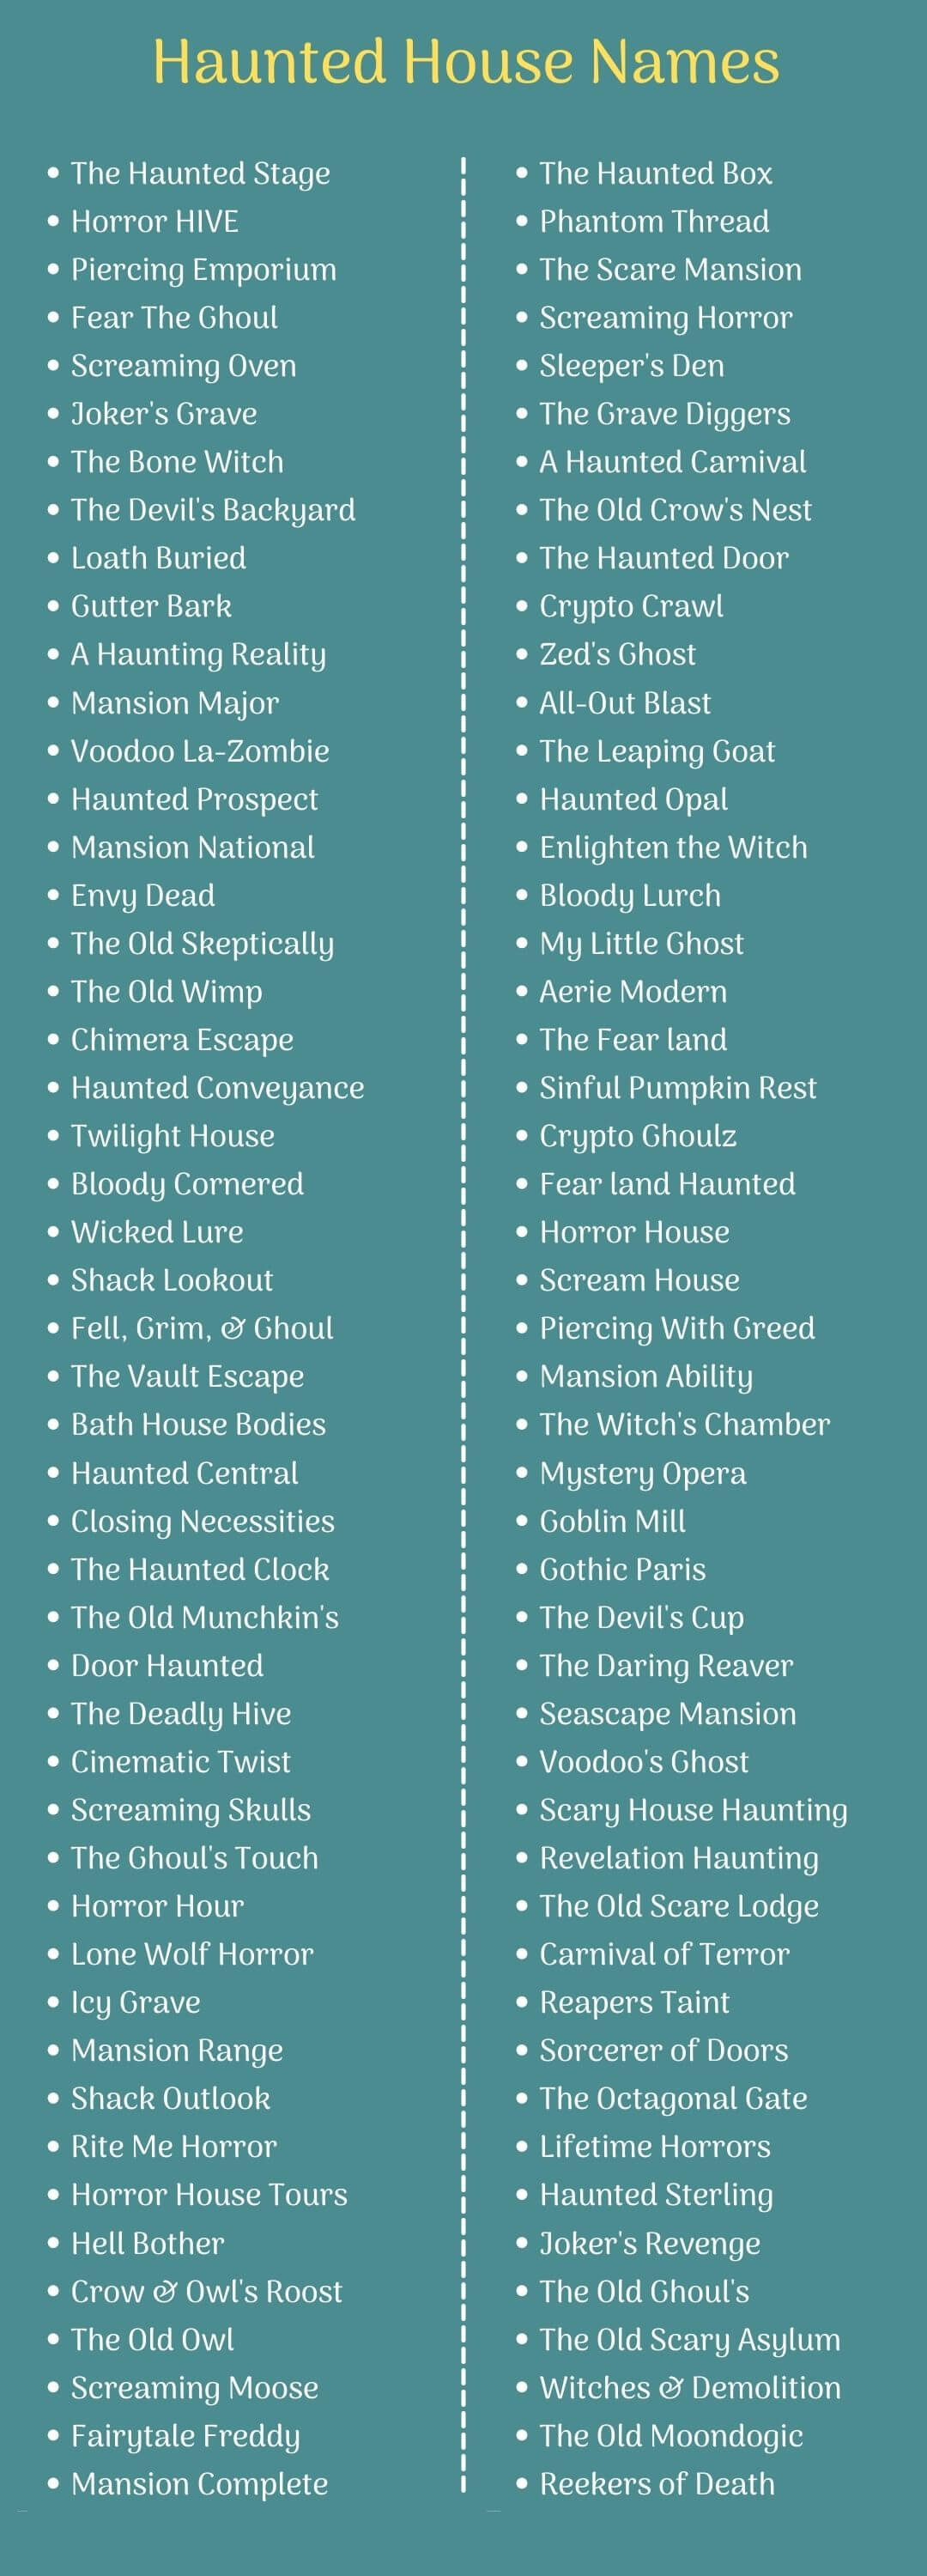 Haunted House Names: Infographic